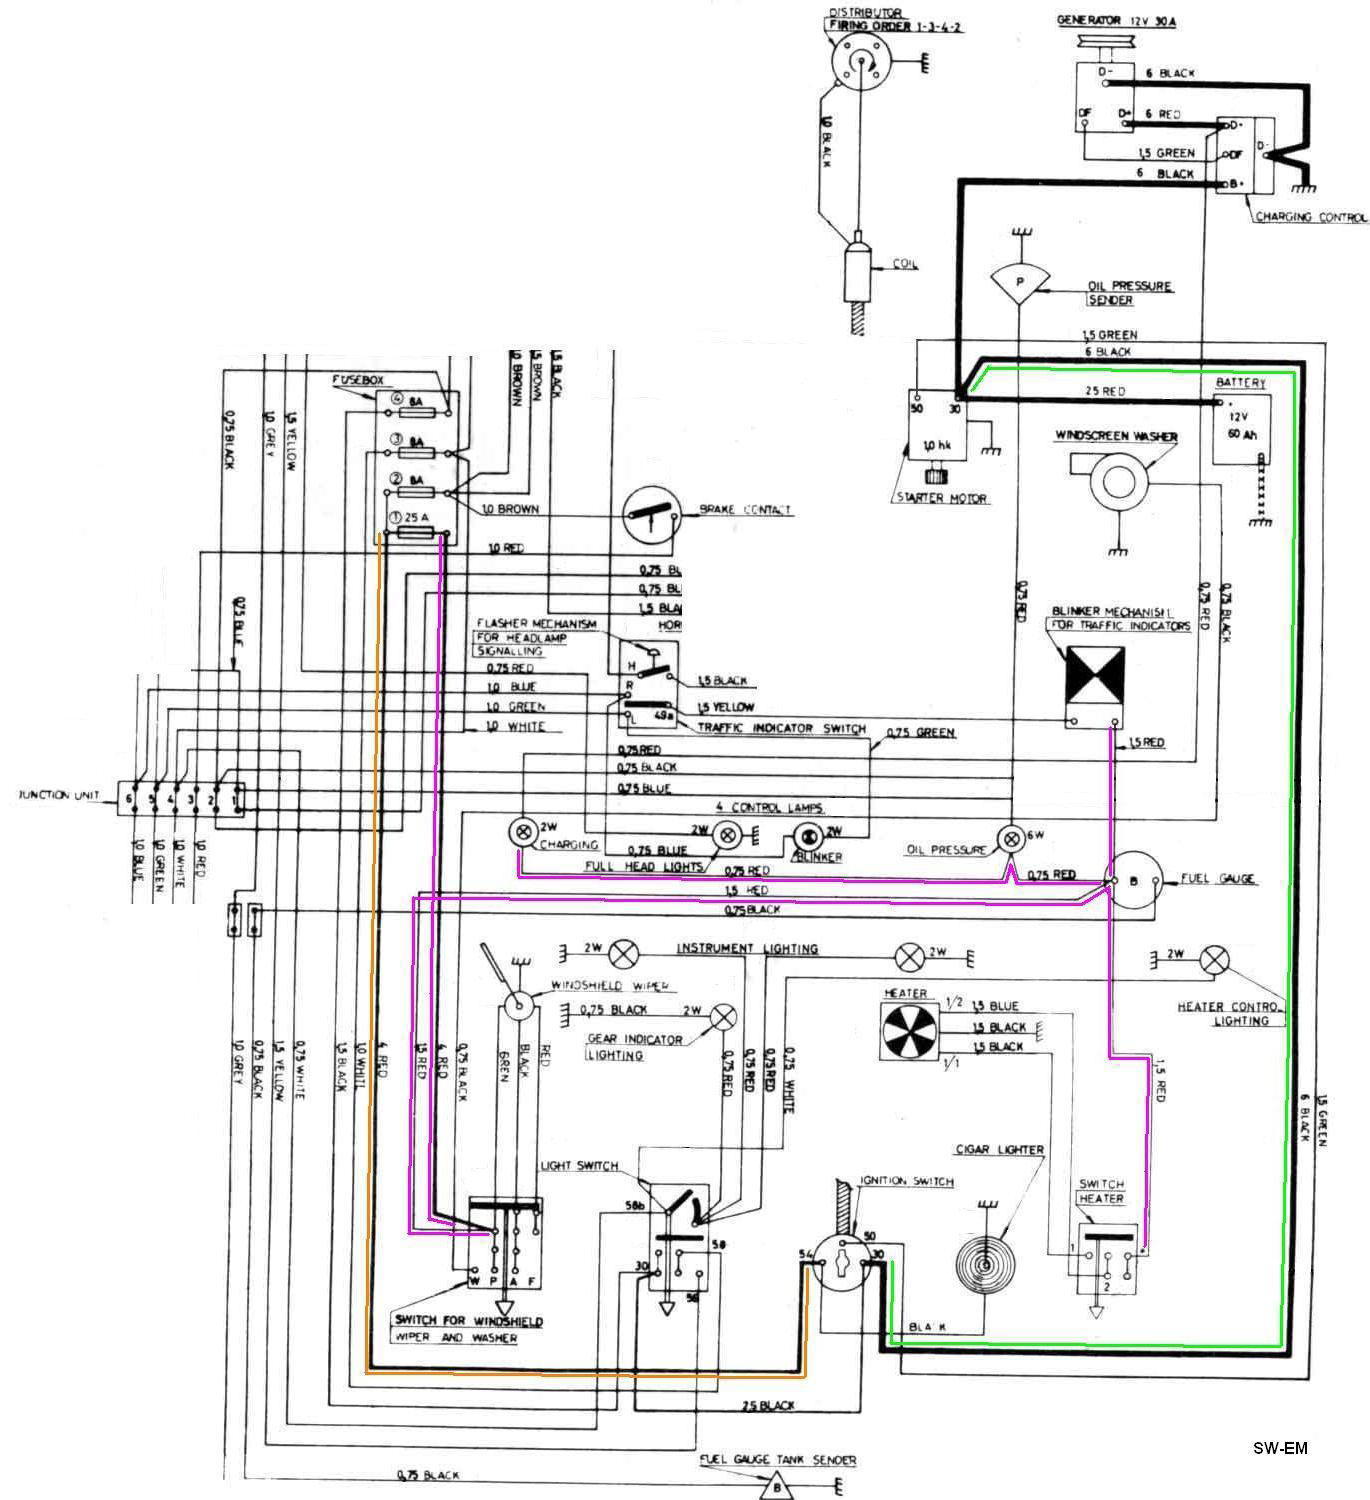 hight resolution of 122s wiring diagram opinions about wiring diagram u2022 rh voterid co volvo 240 fuse diagram volvo